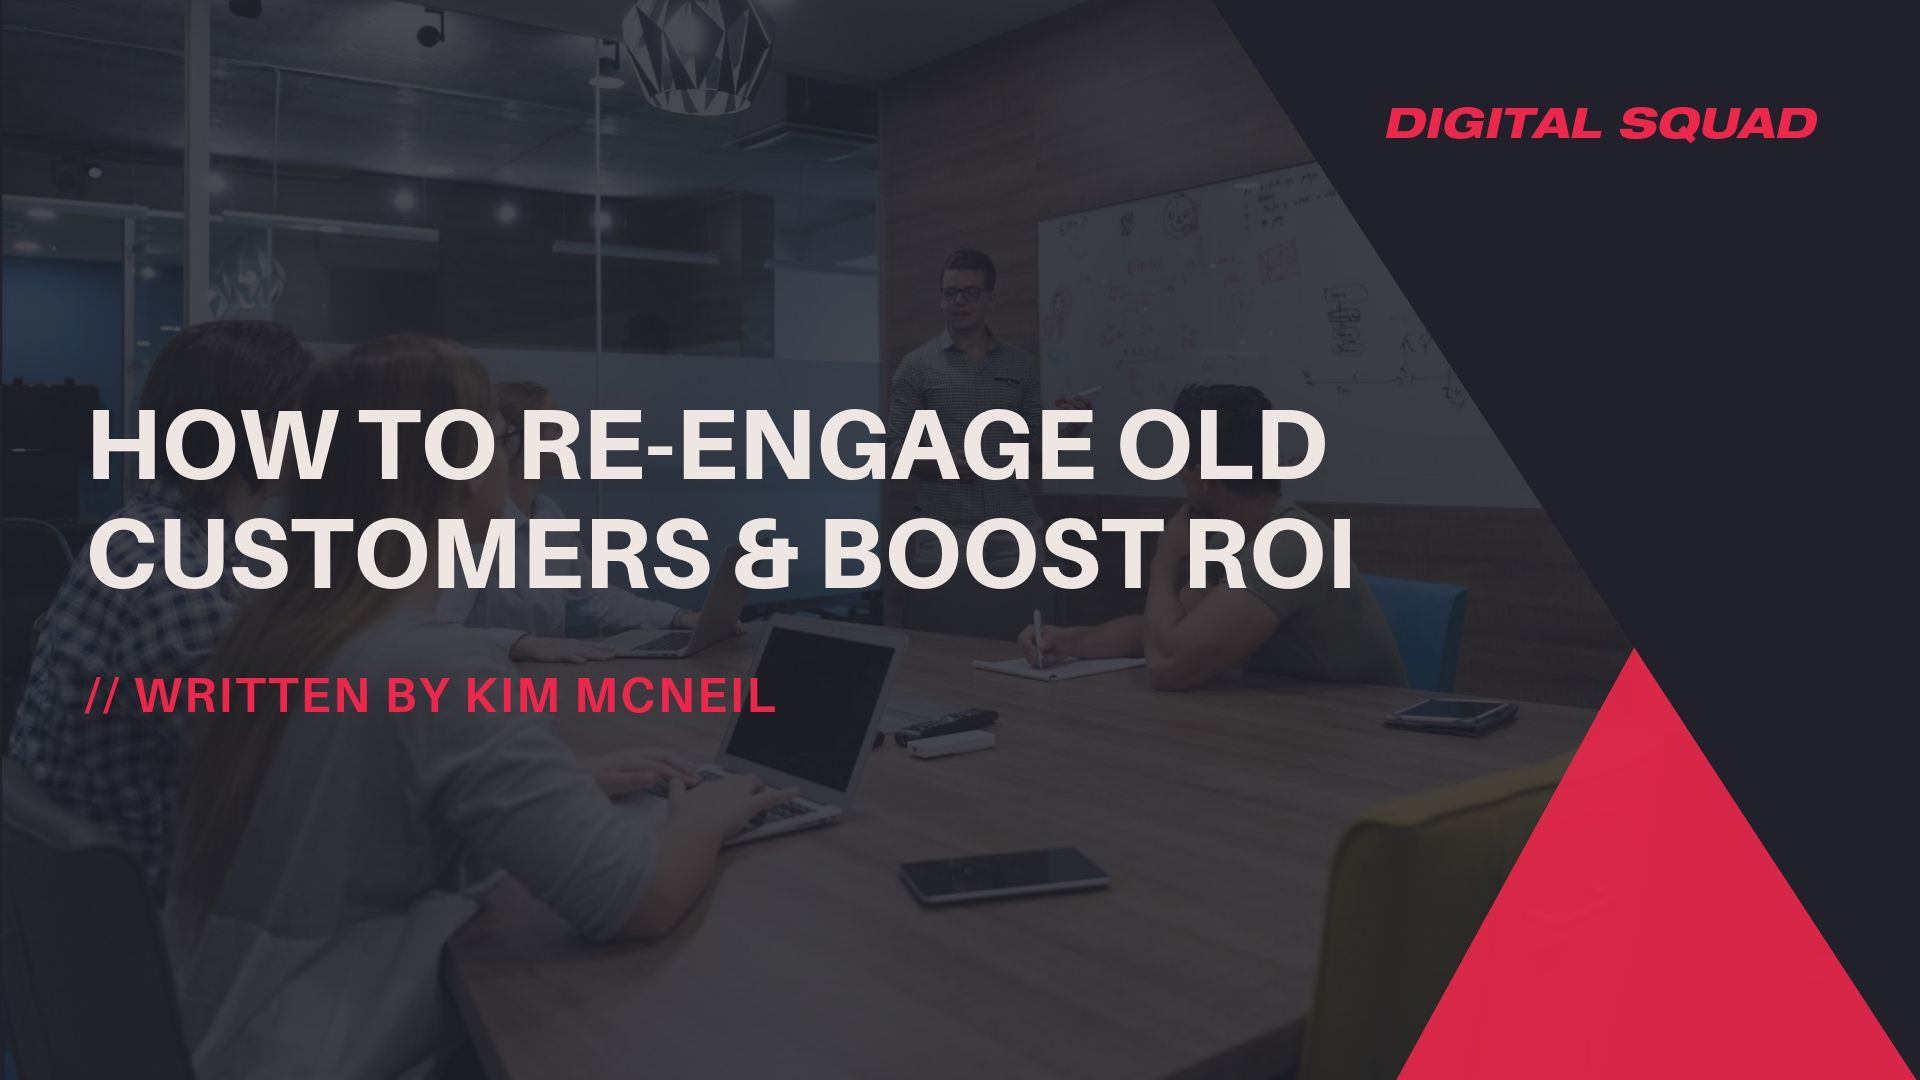 How to Re-Engage Old Customers & Boost ROI